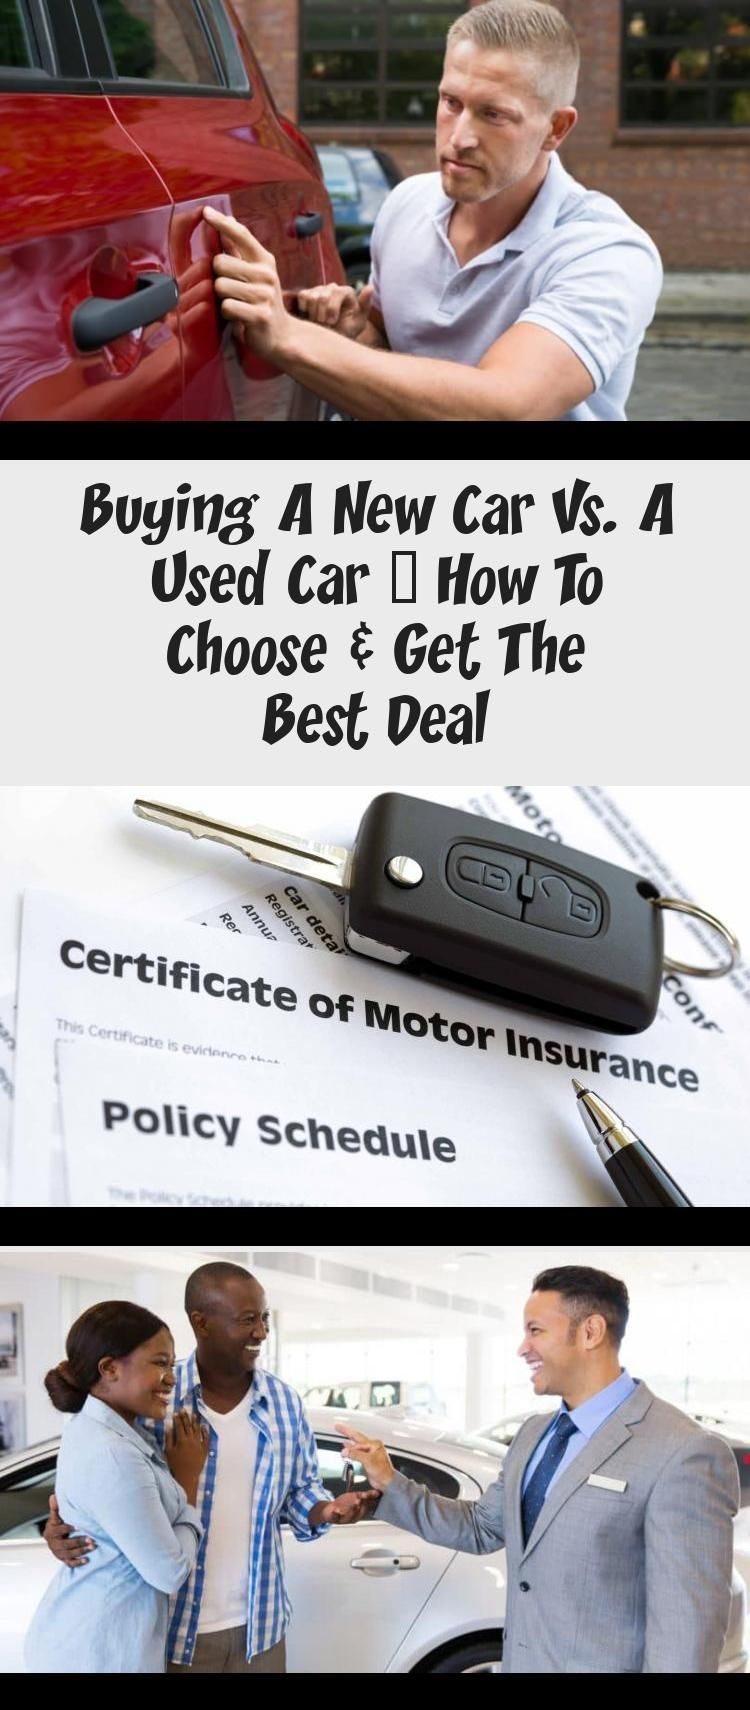 Buying a New Car vs. a Used Car How to Choose & Get the